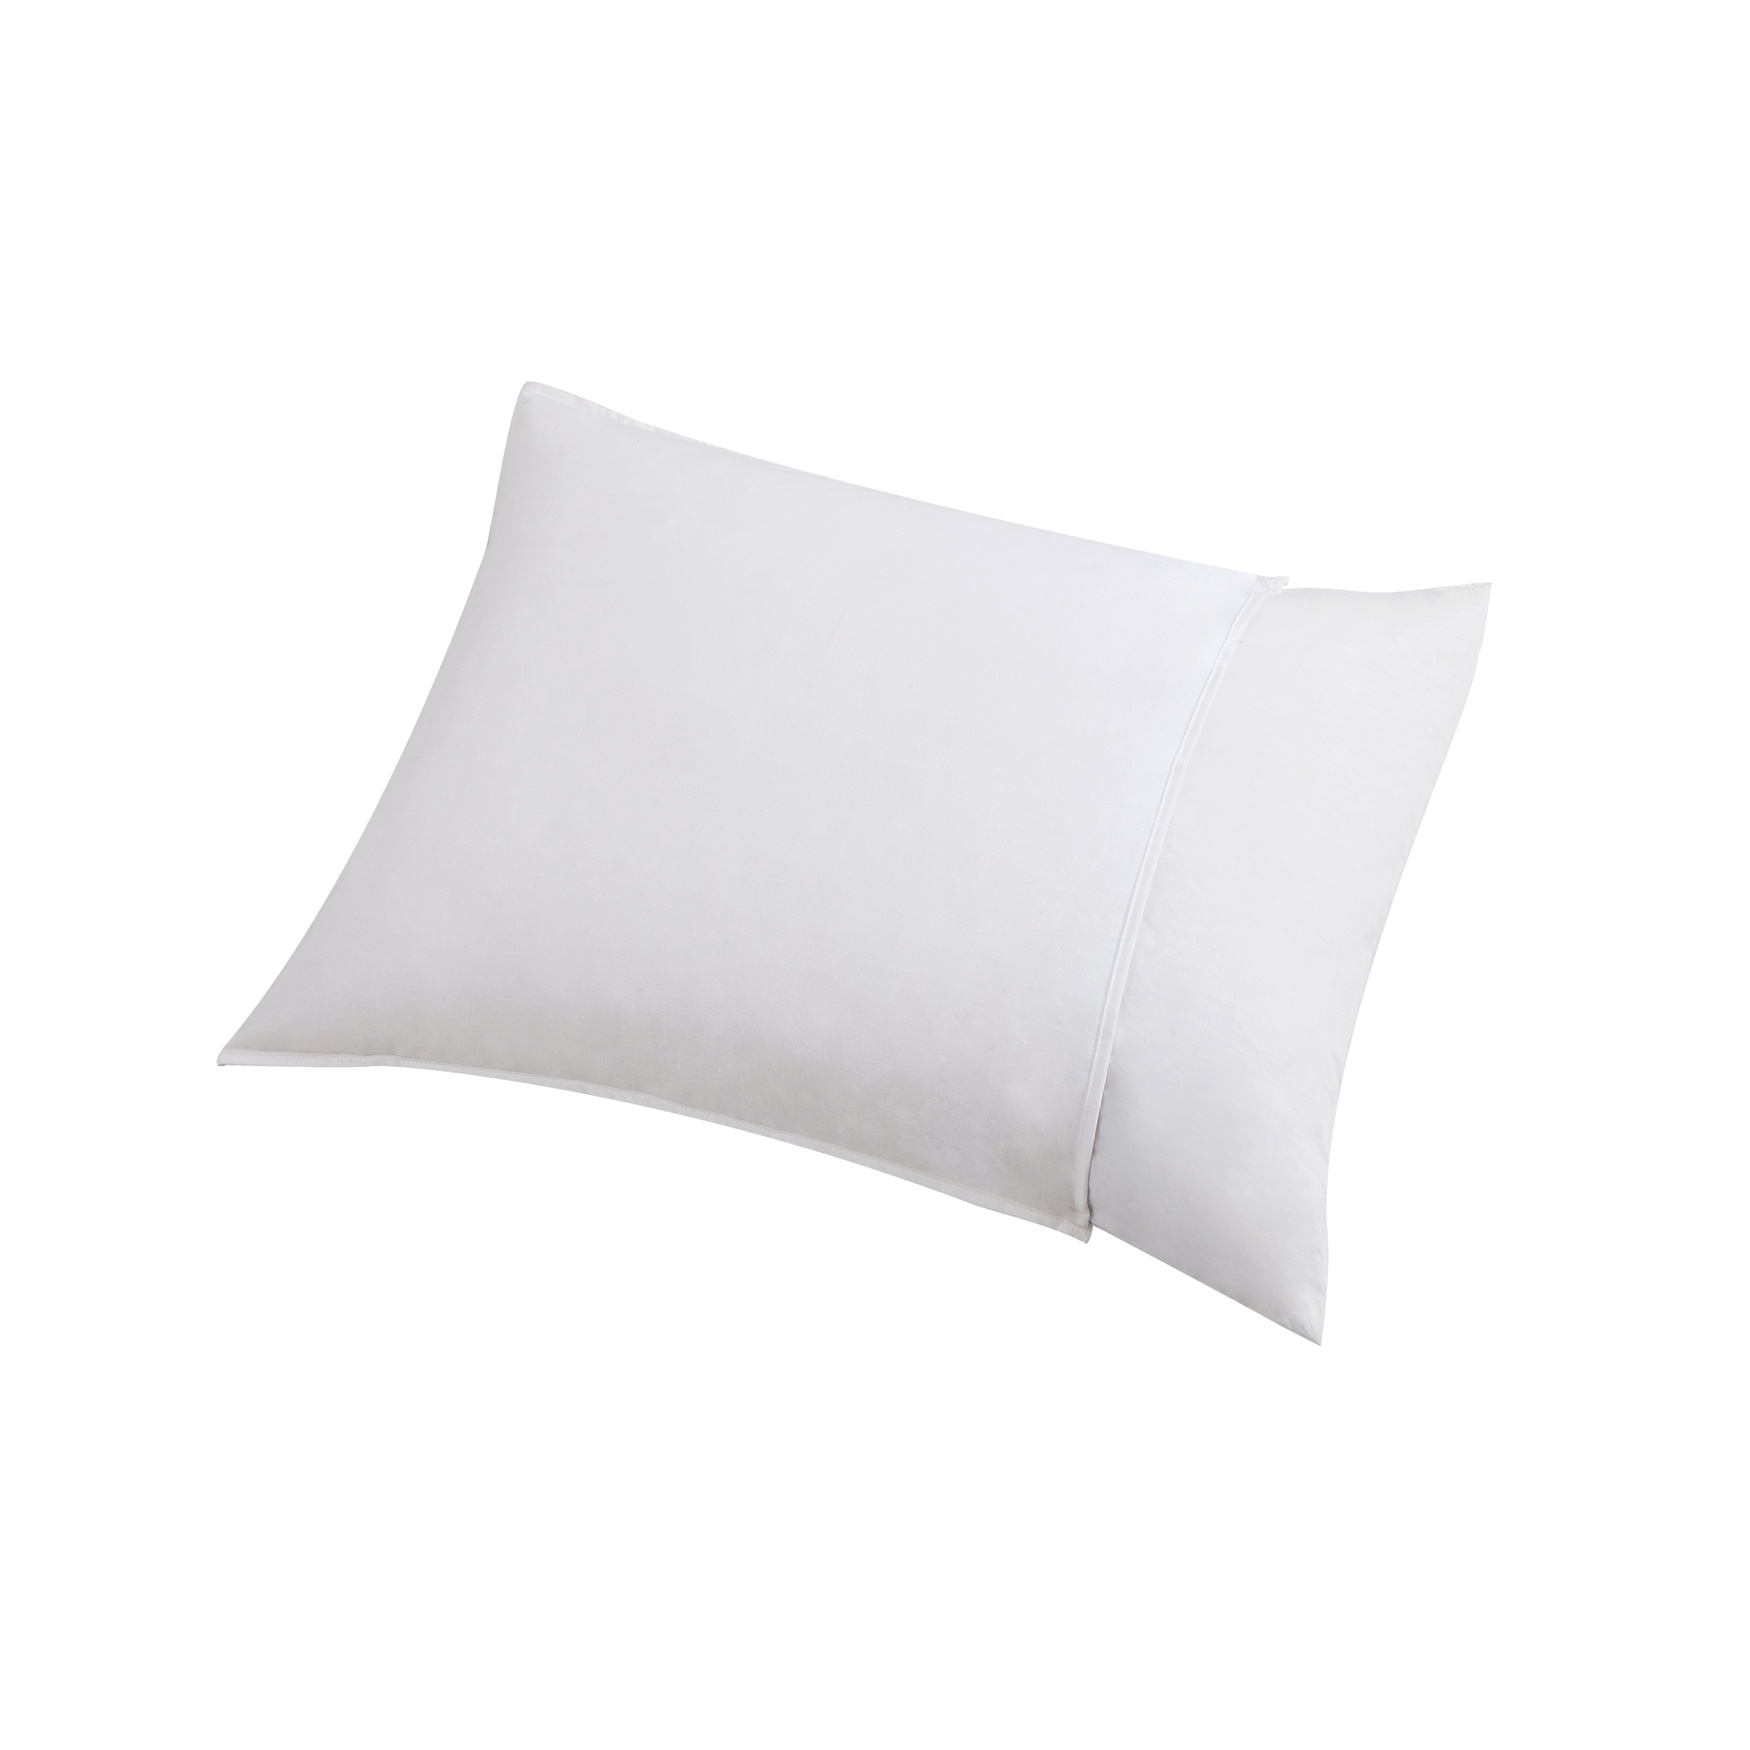 Dust Buster Allergy Relief Breathable Pillow Protector with Stain Release, WHITE